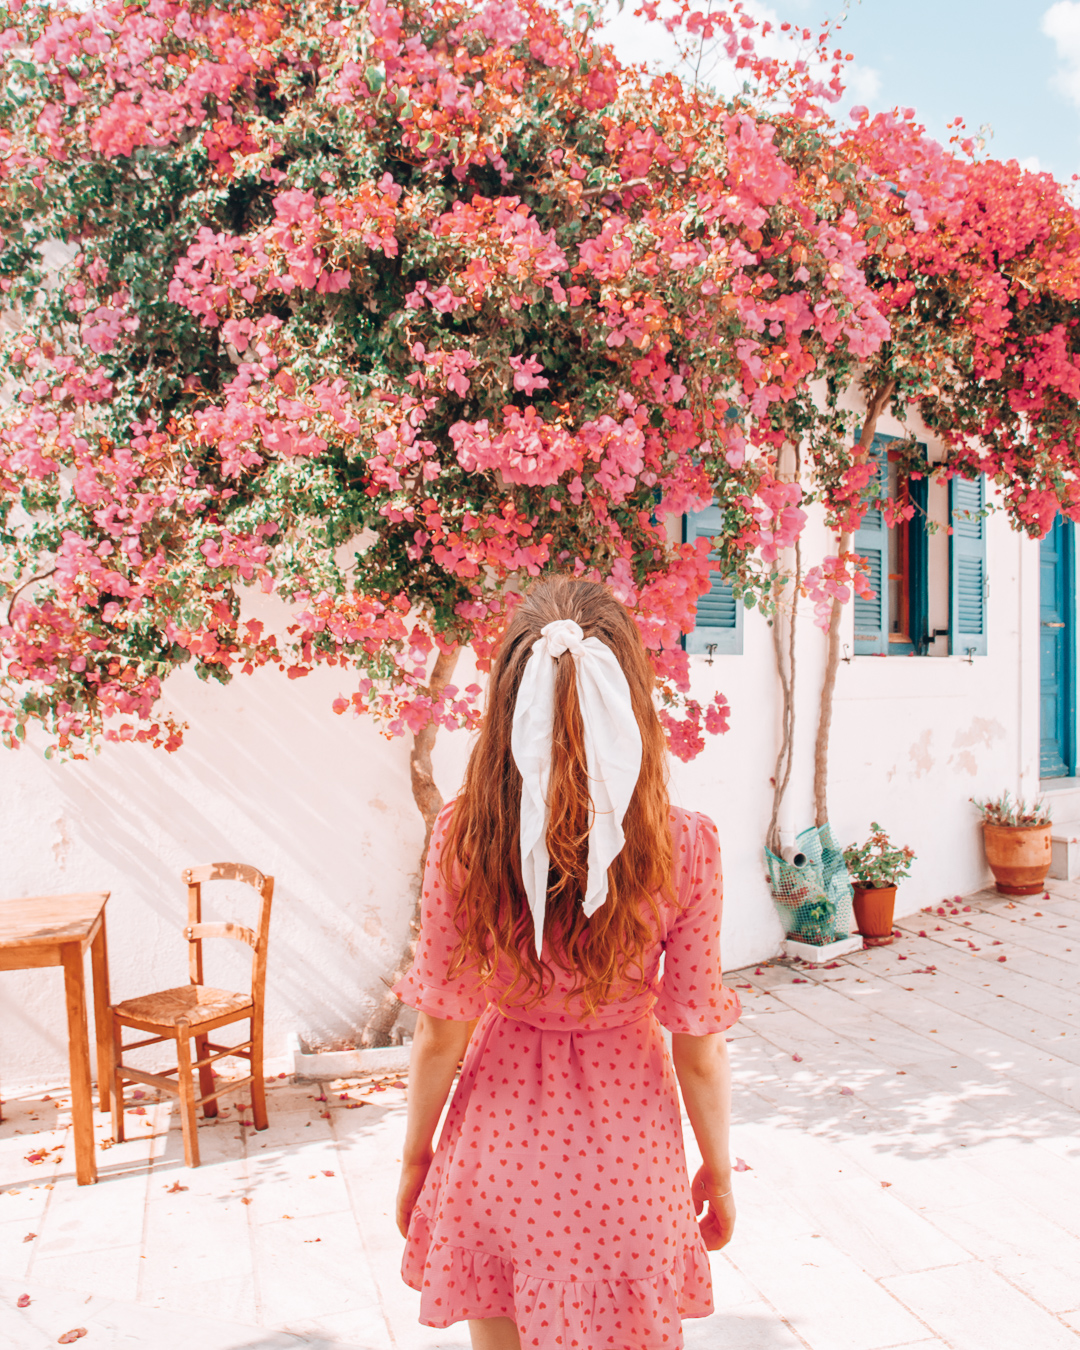 Girl in front of a building with flowers